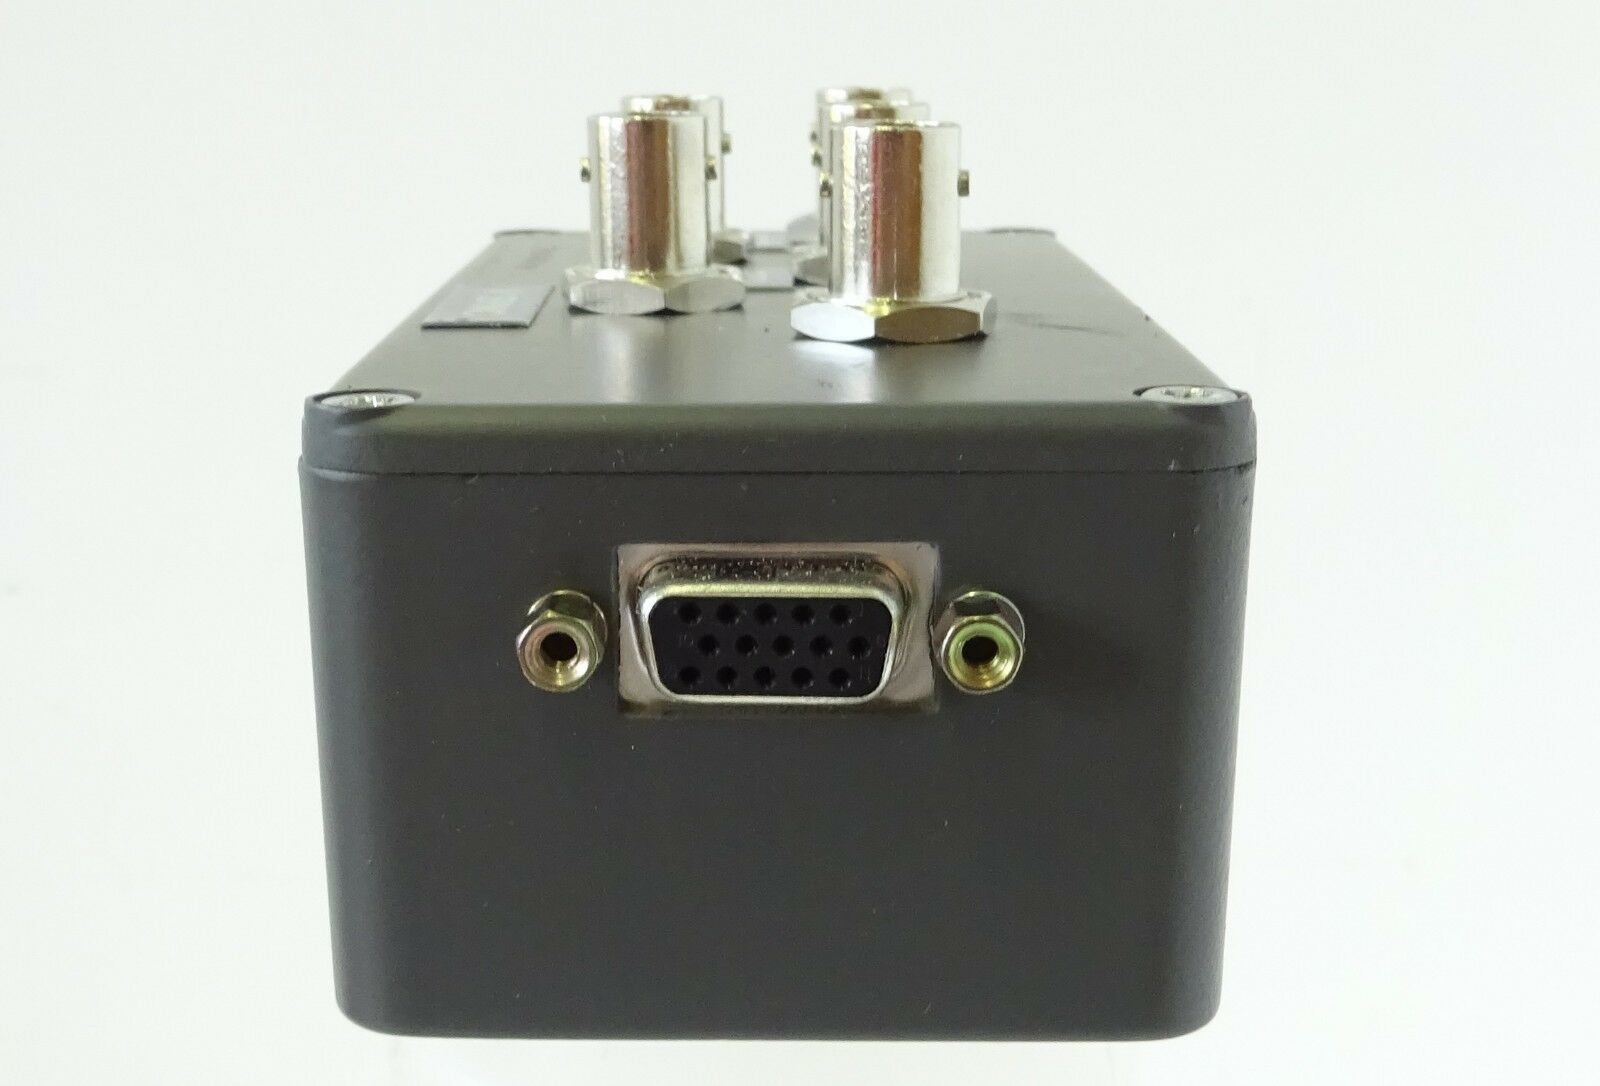 ELNA 103206 Fitting Kit for NNR-A508 Slave Monitor Output Kit 103207 Adapterbox 103207 Kit 6ca840